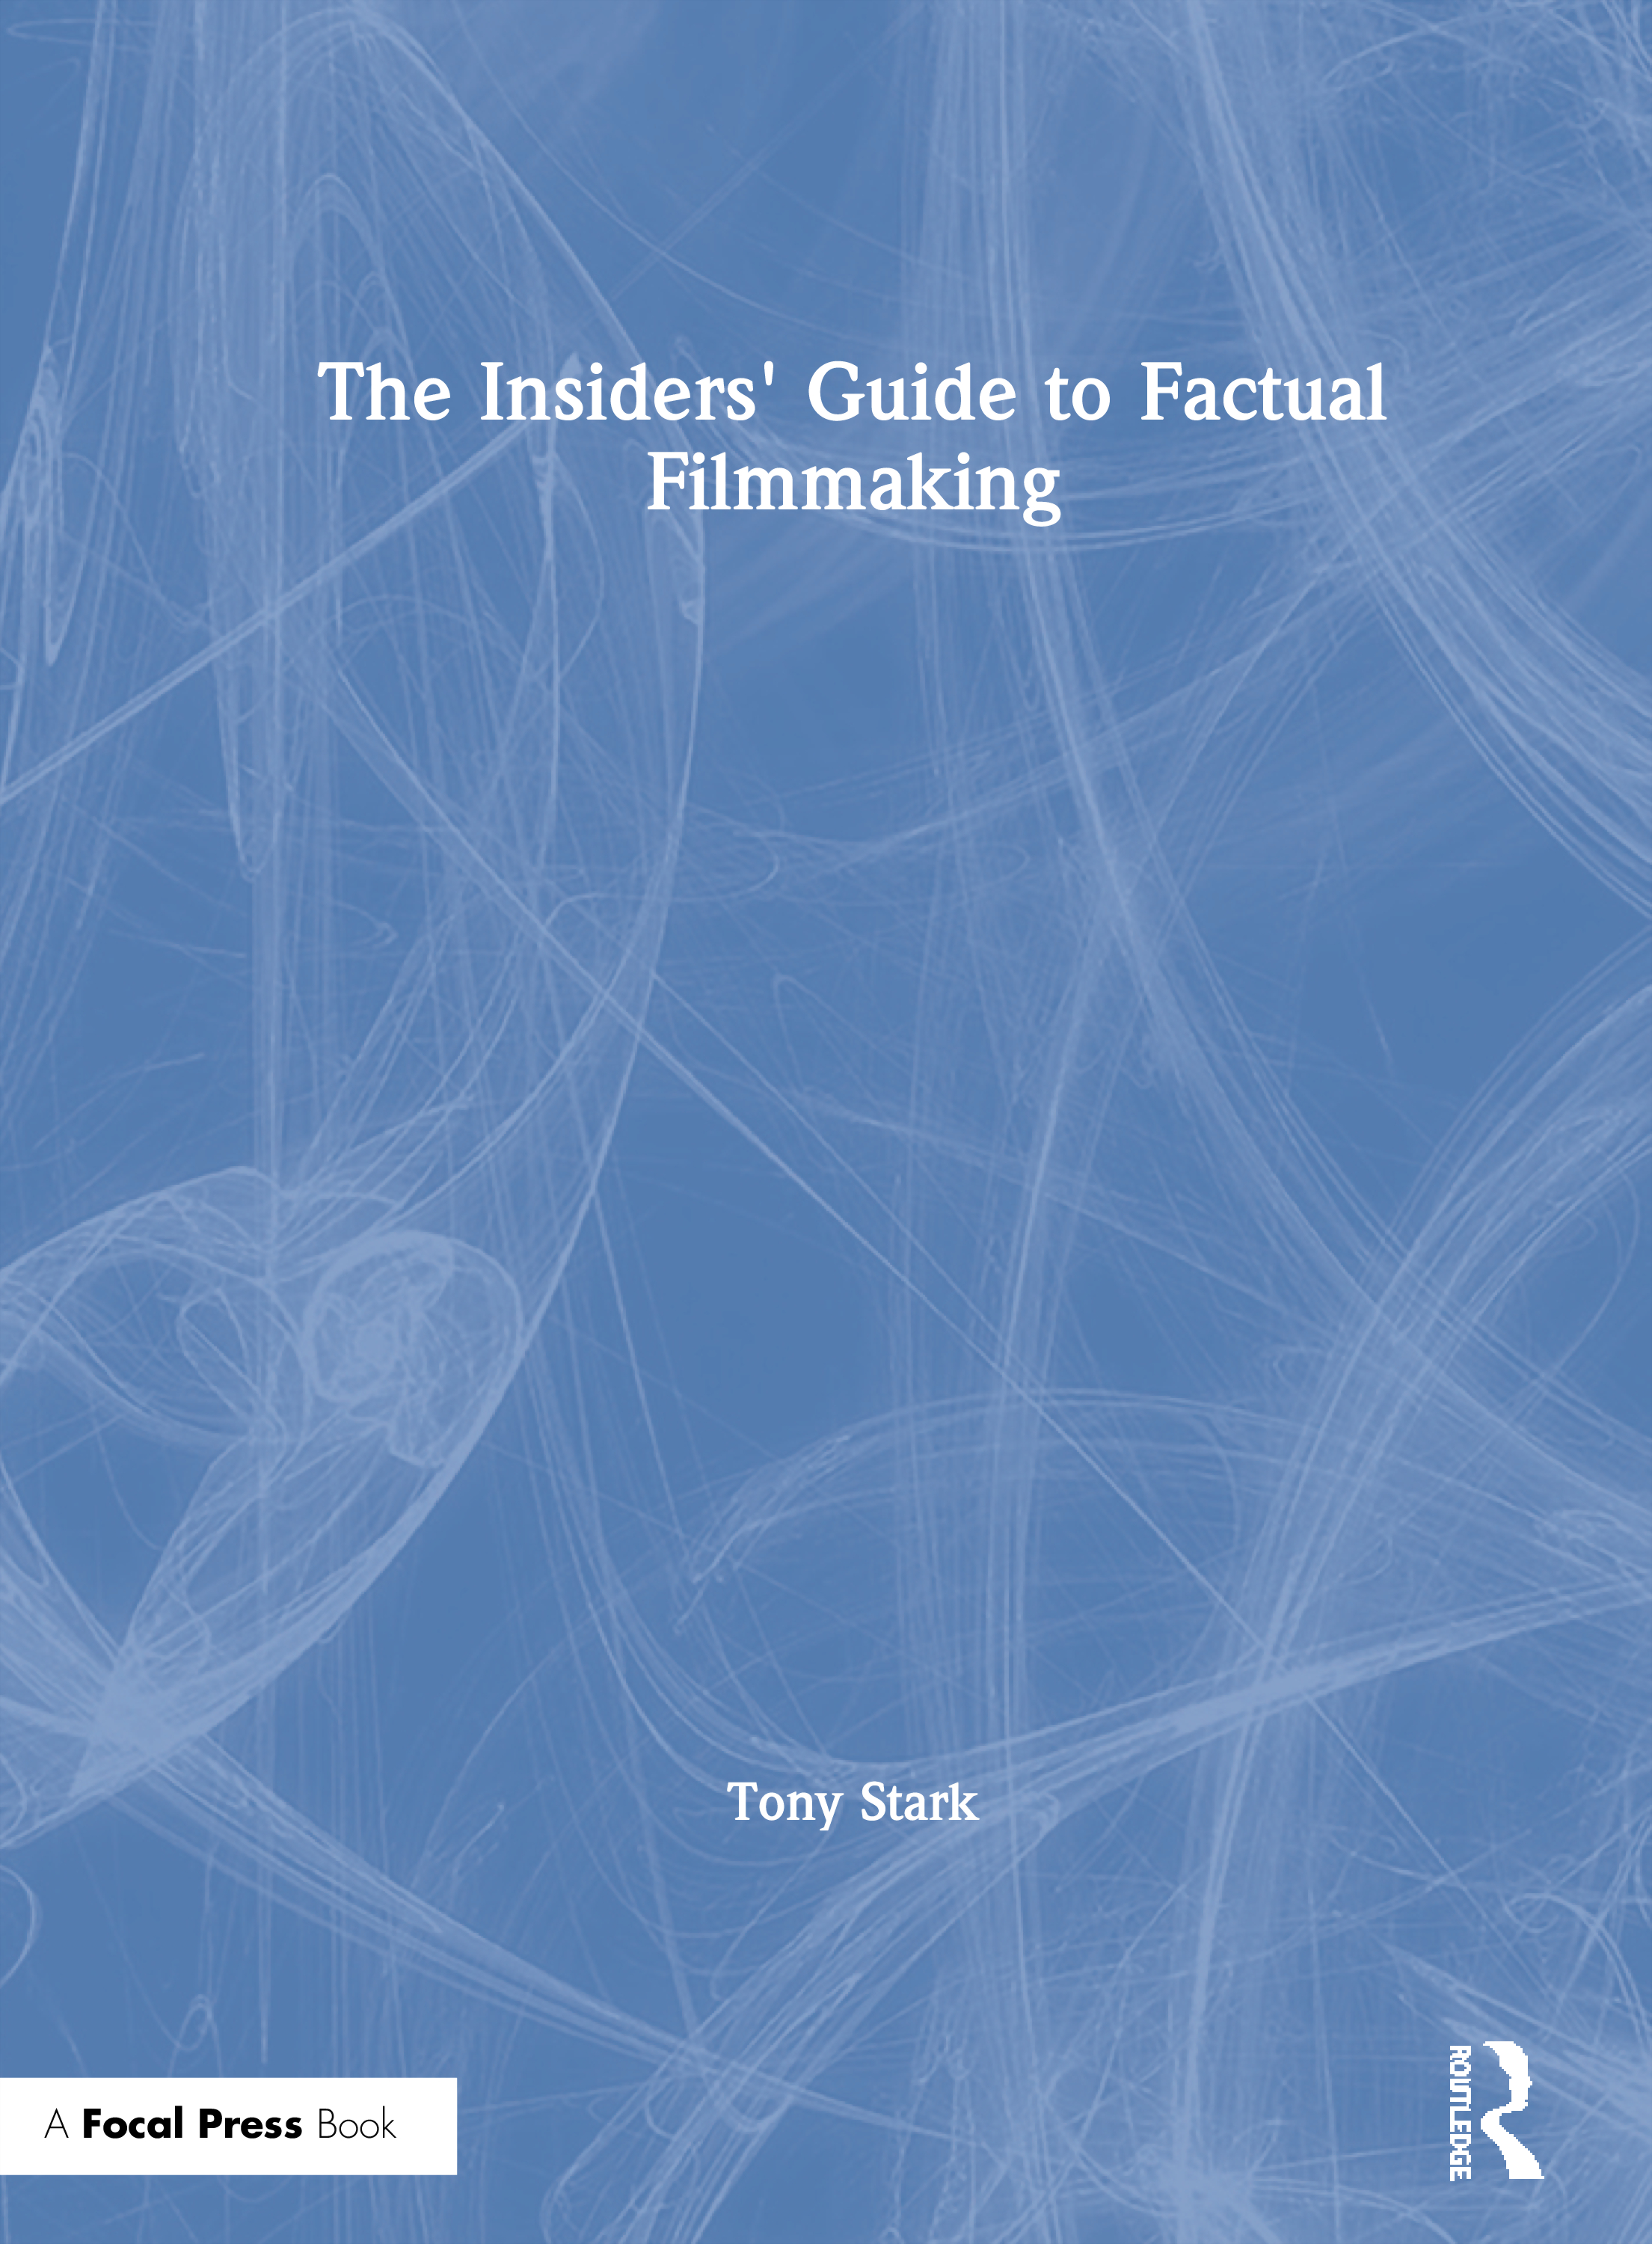 The Insiders' Guide to Factual Filmmaking book cover